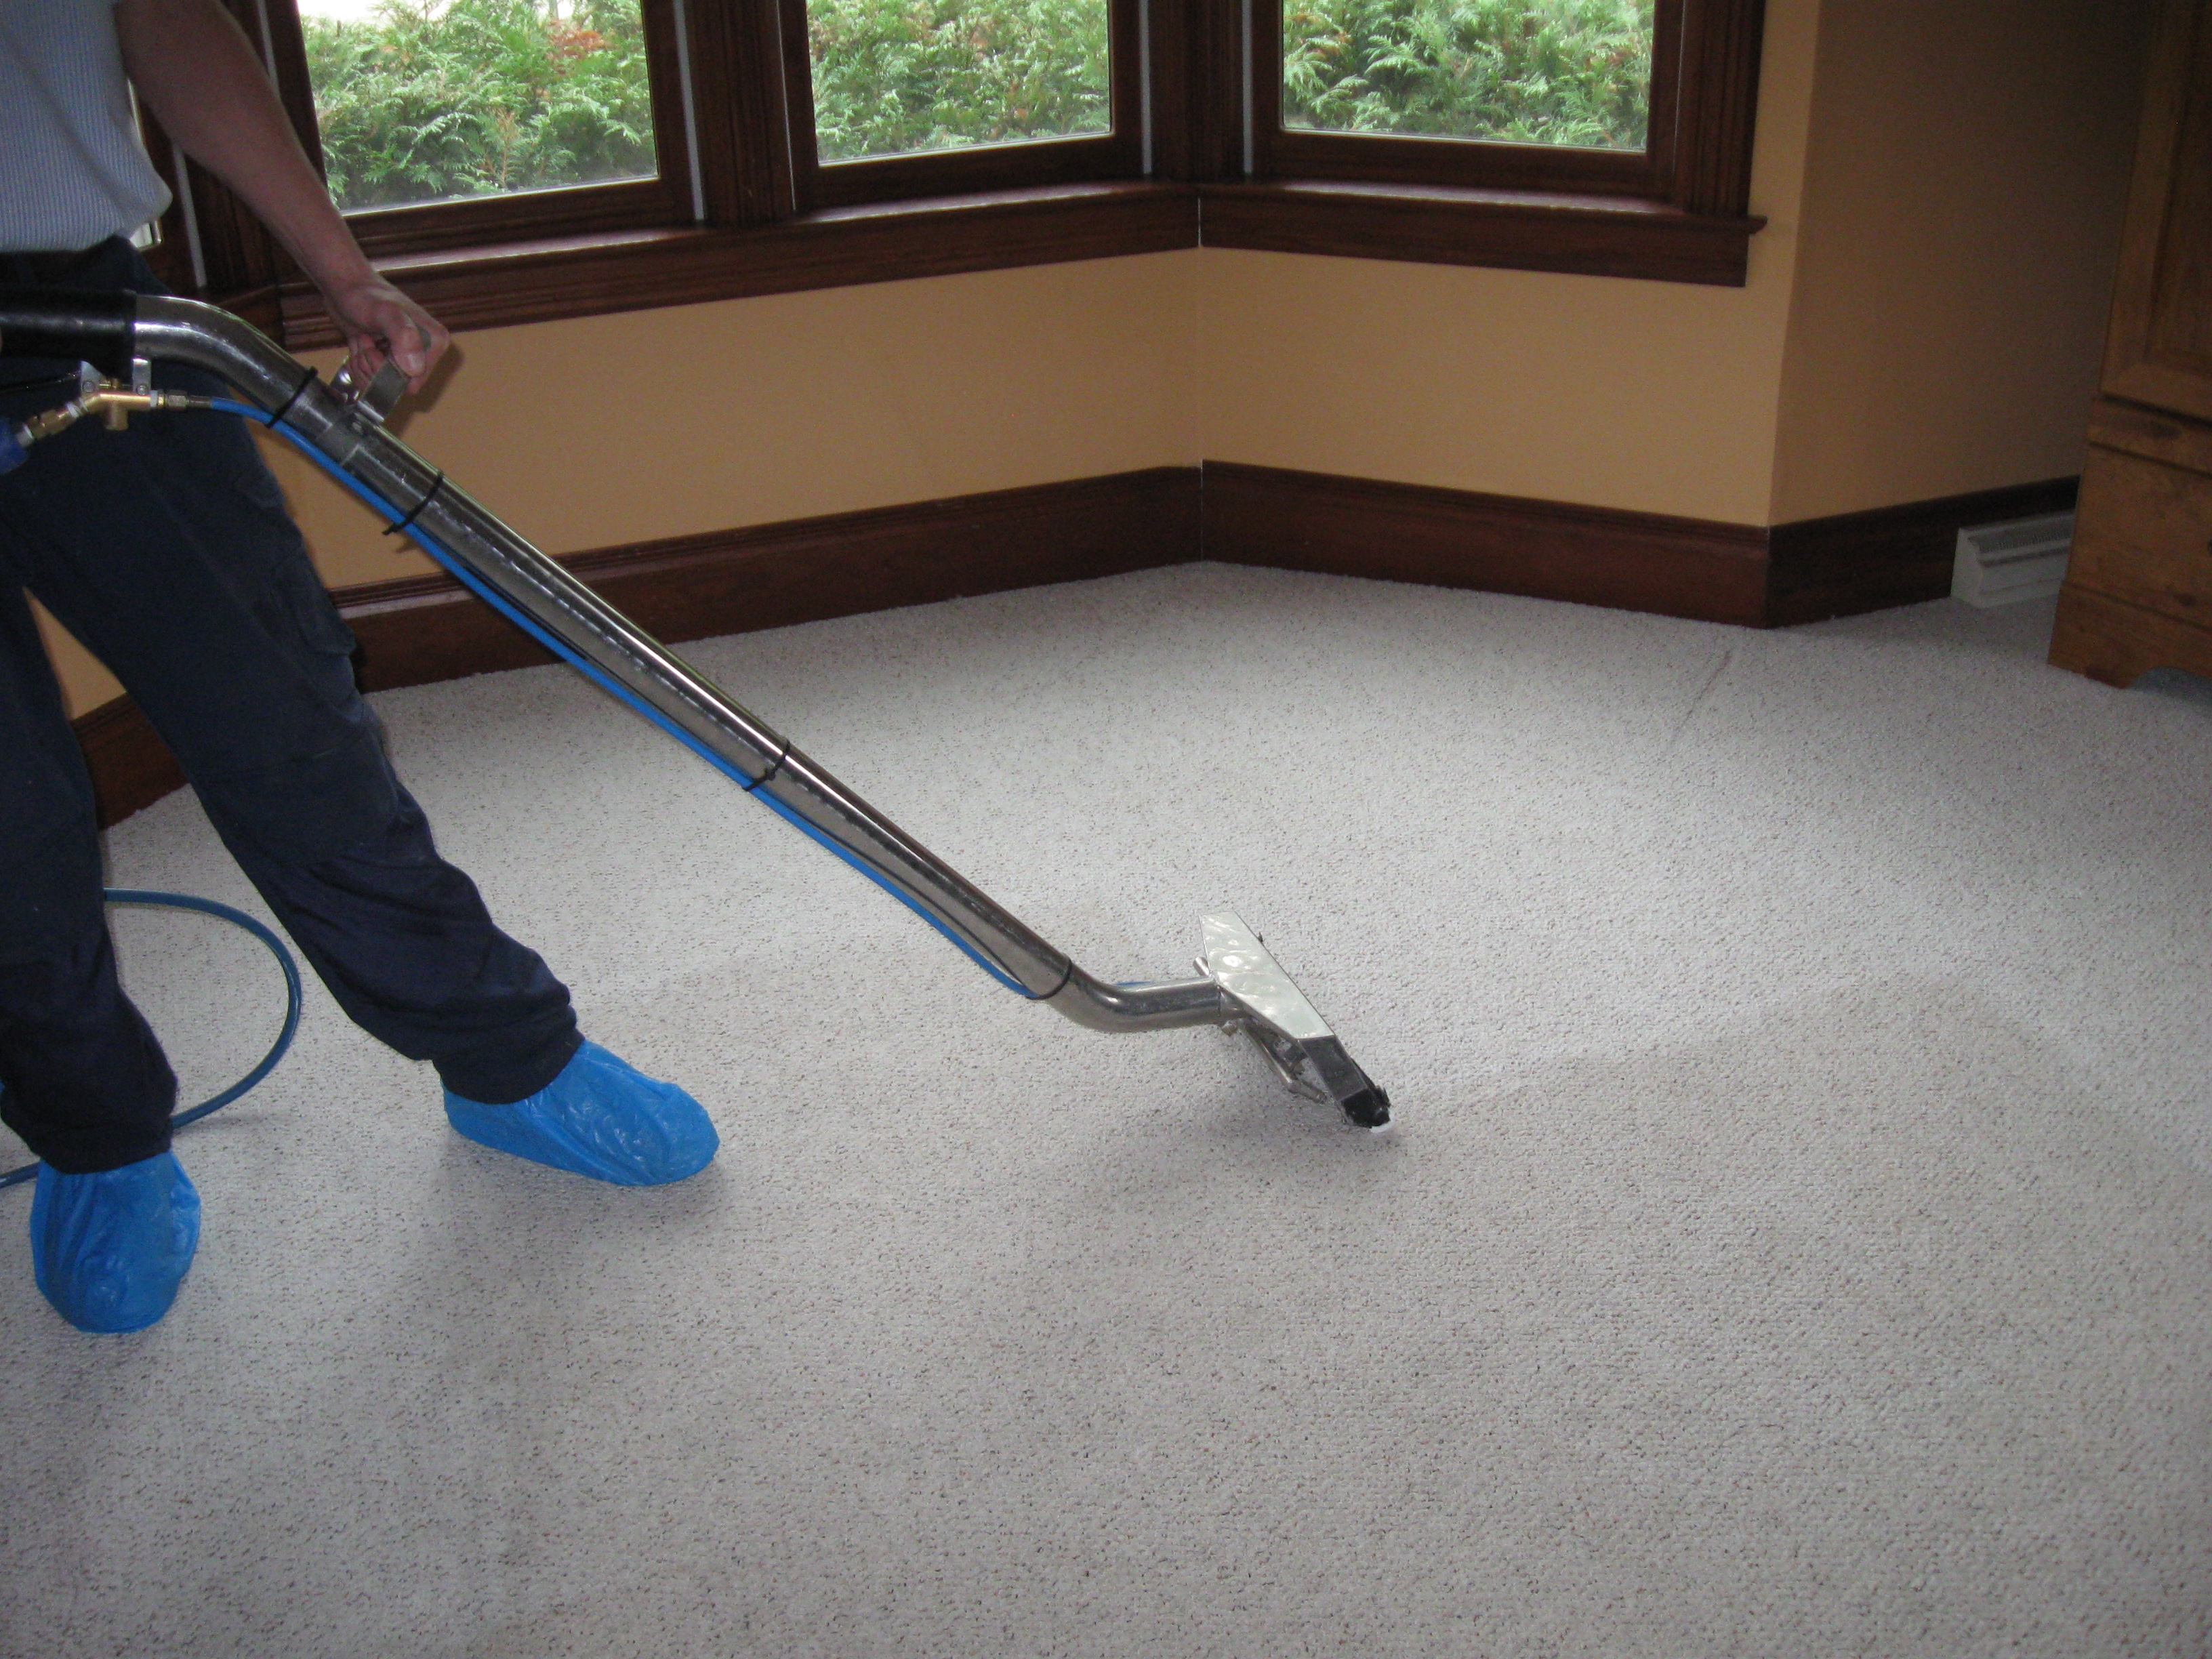 The Importance Of Hiring Professional Carpet Cleaning